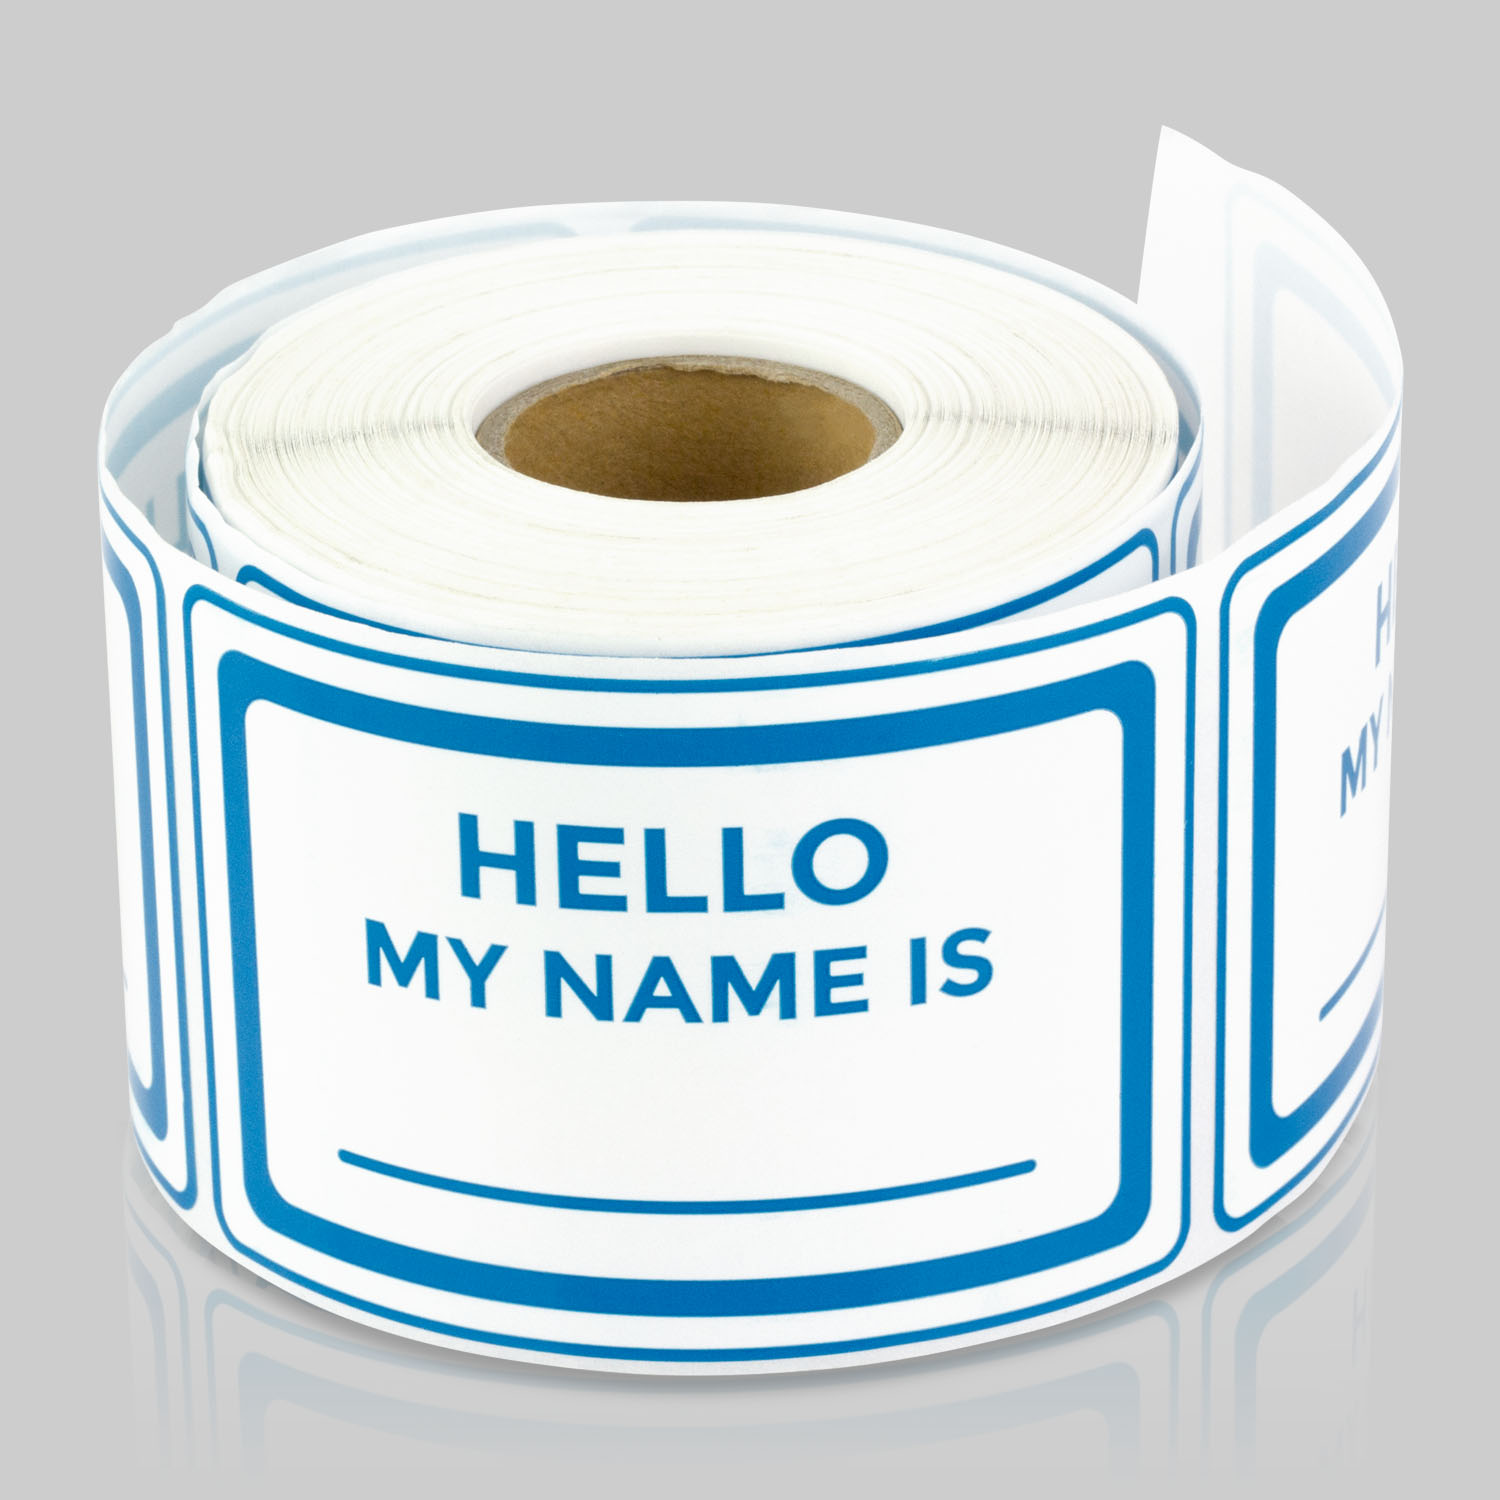 3 x 2 inch hello my names is blue color name tag badges labels stickers by tuco deals blue 10 rolls per pack walmart com